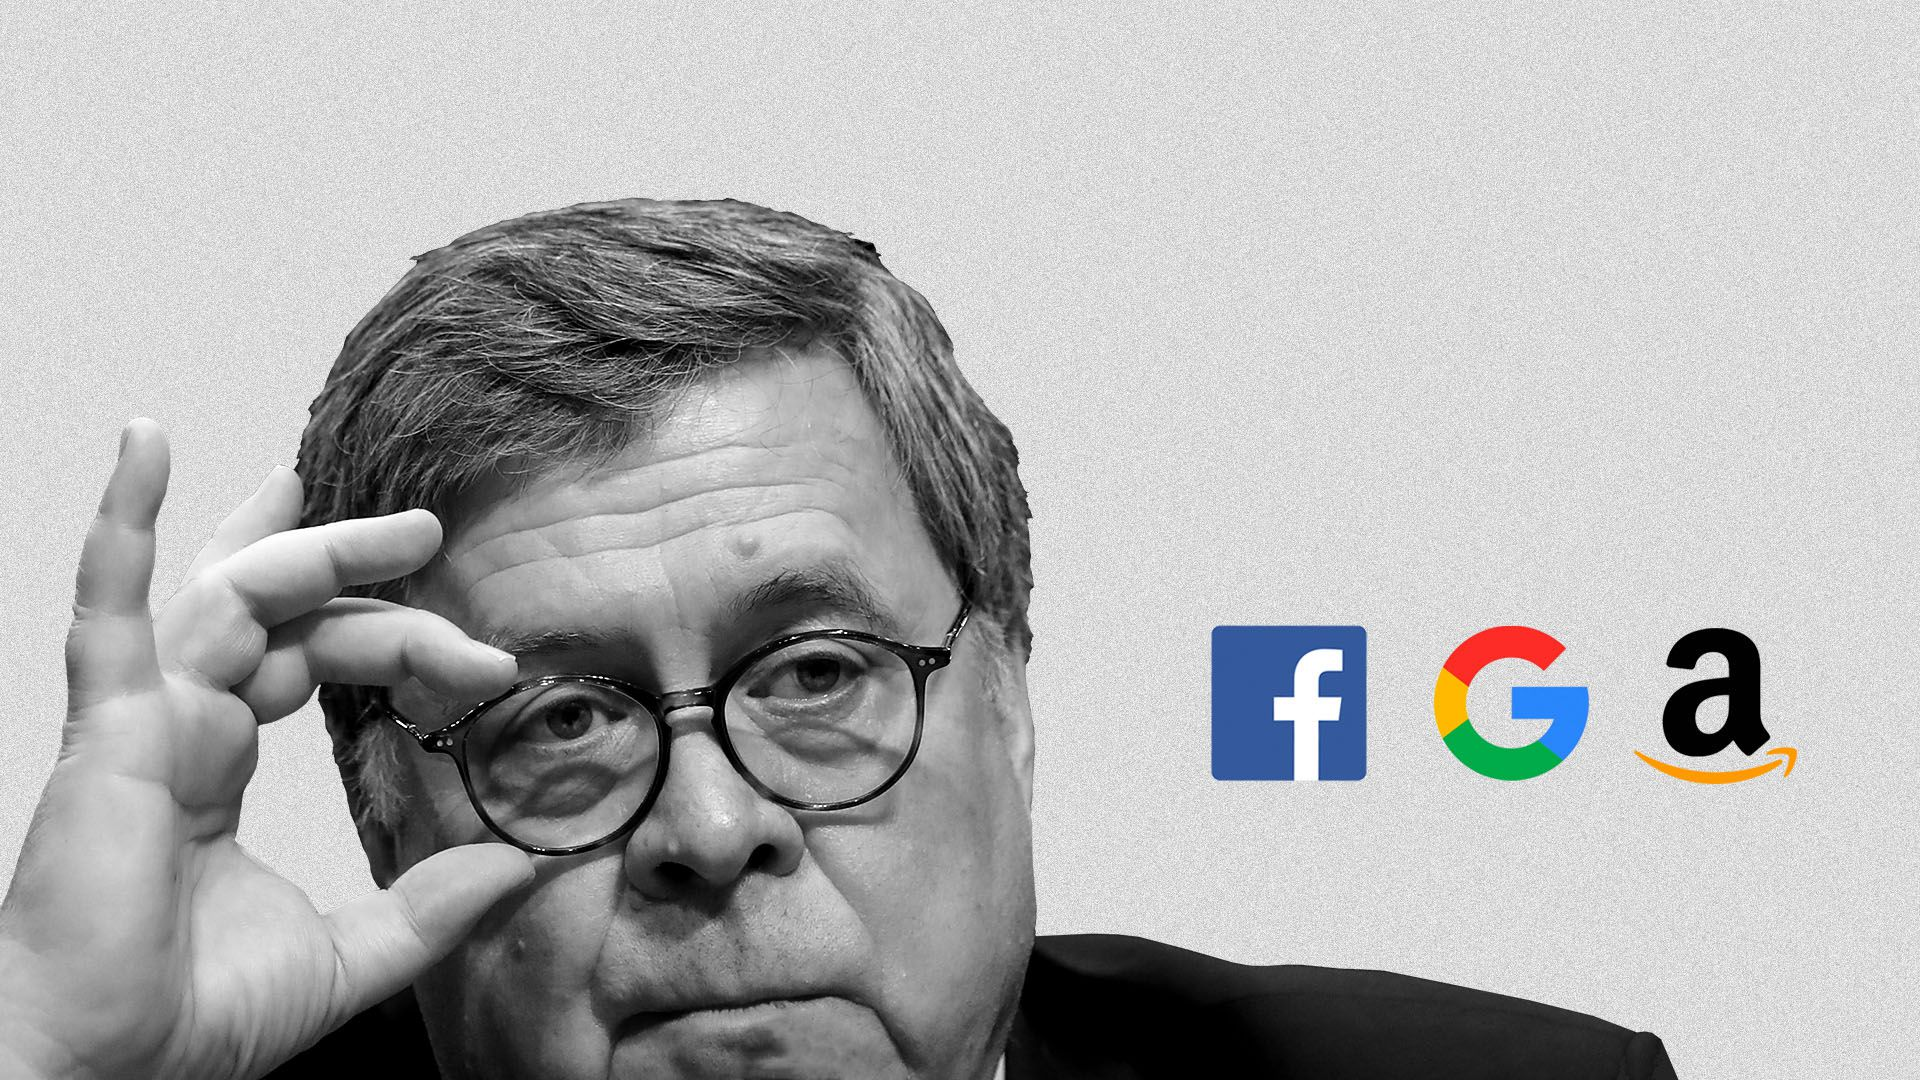 Illustration of Bill Barr scrutinizing logos of Facebook, Google, and Amazon